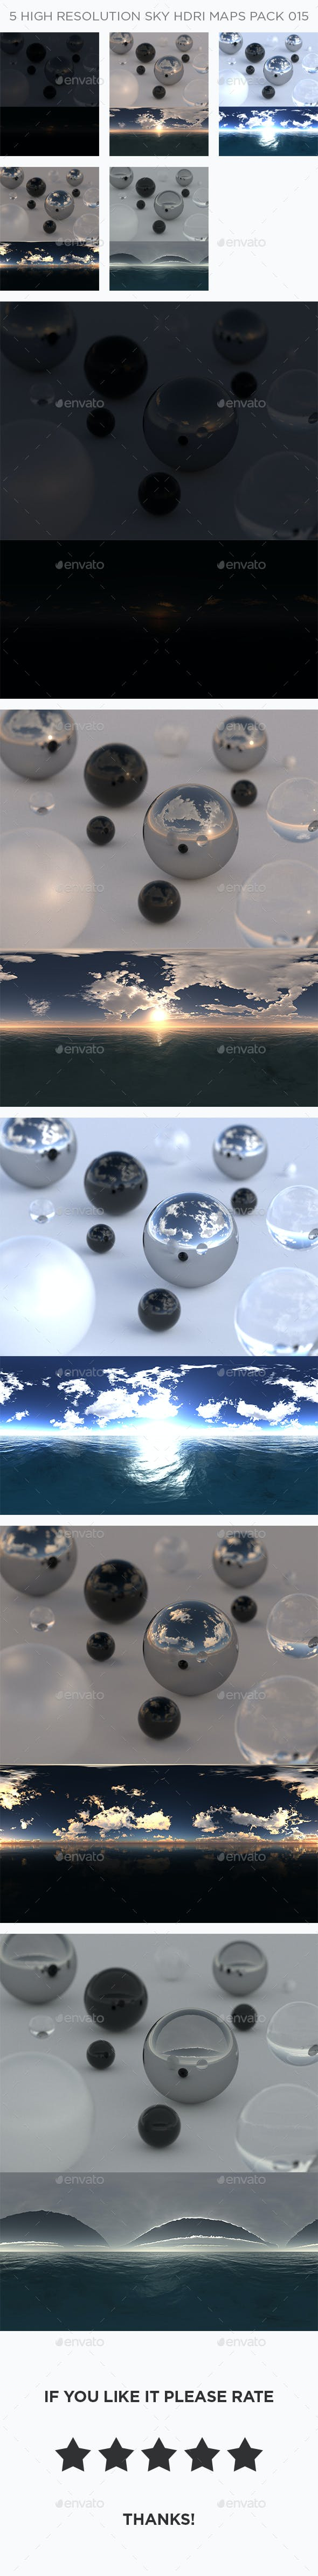 5 High Resolution Sky HDRi Maps Pack 015 - 3DOcean Item for Sale